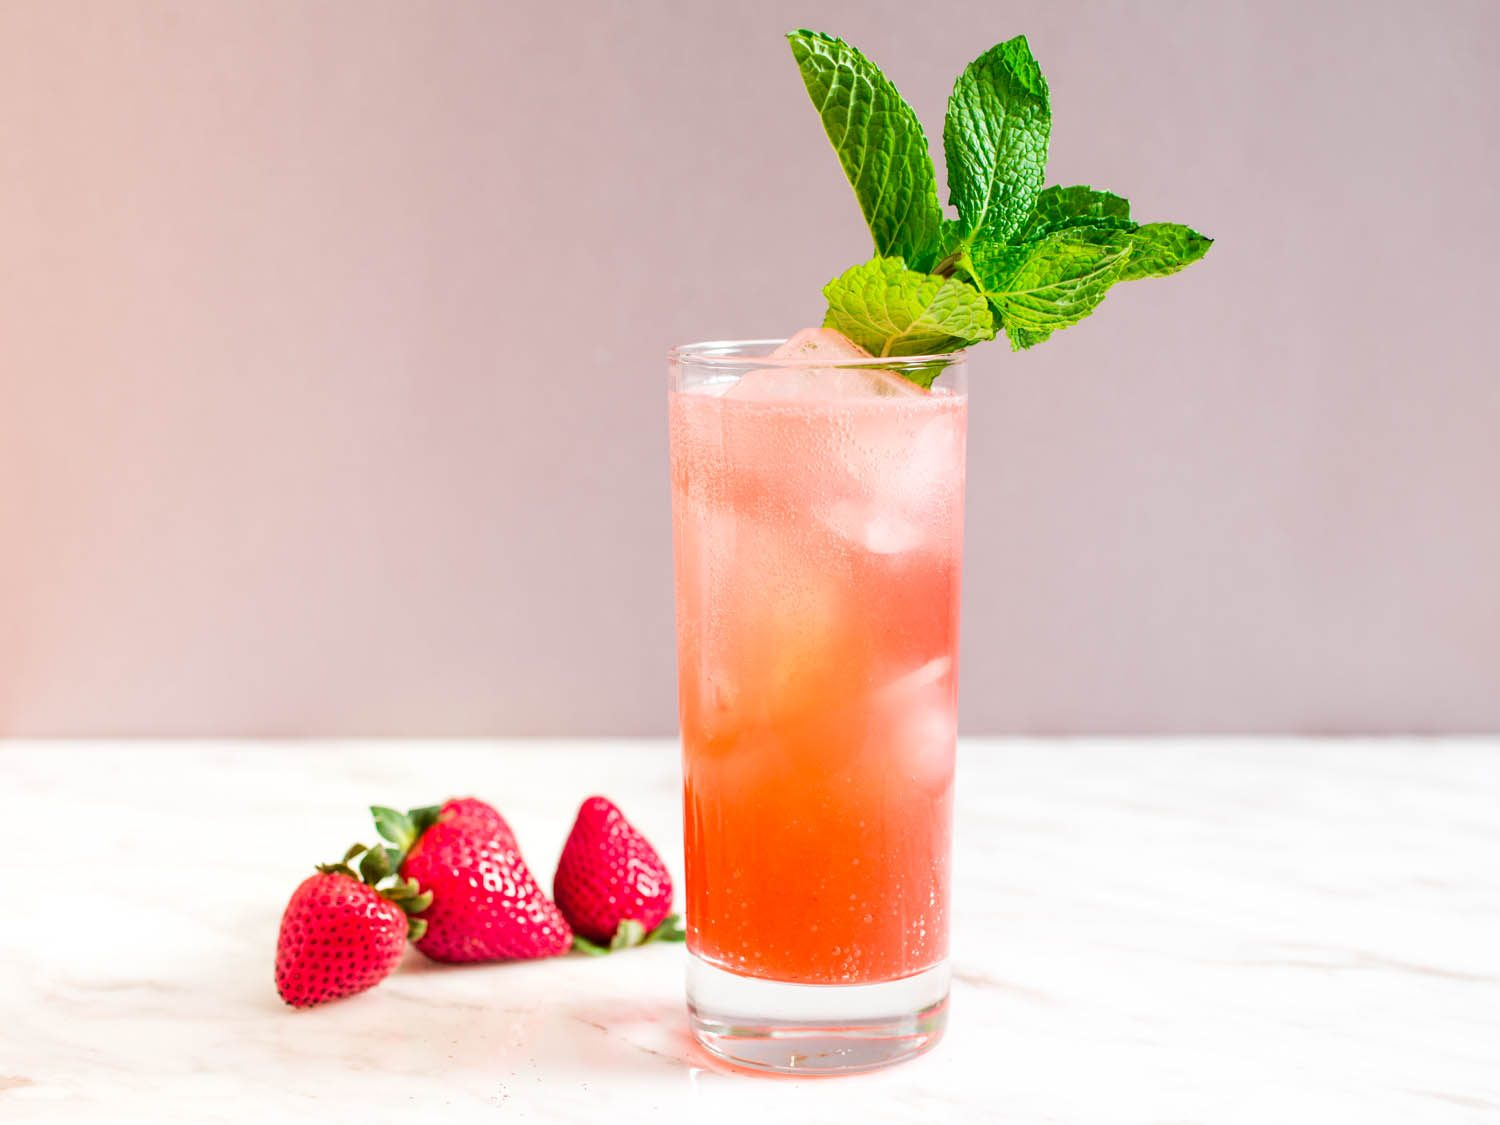 It's Strawberry Day And We Have Some Berry Exciting Cocktails For You